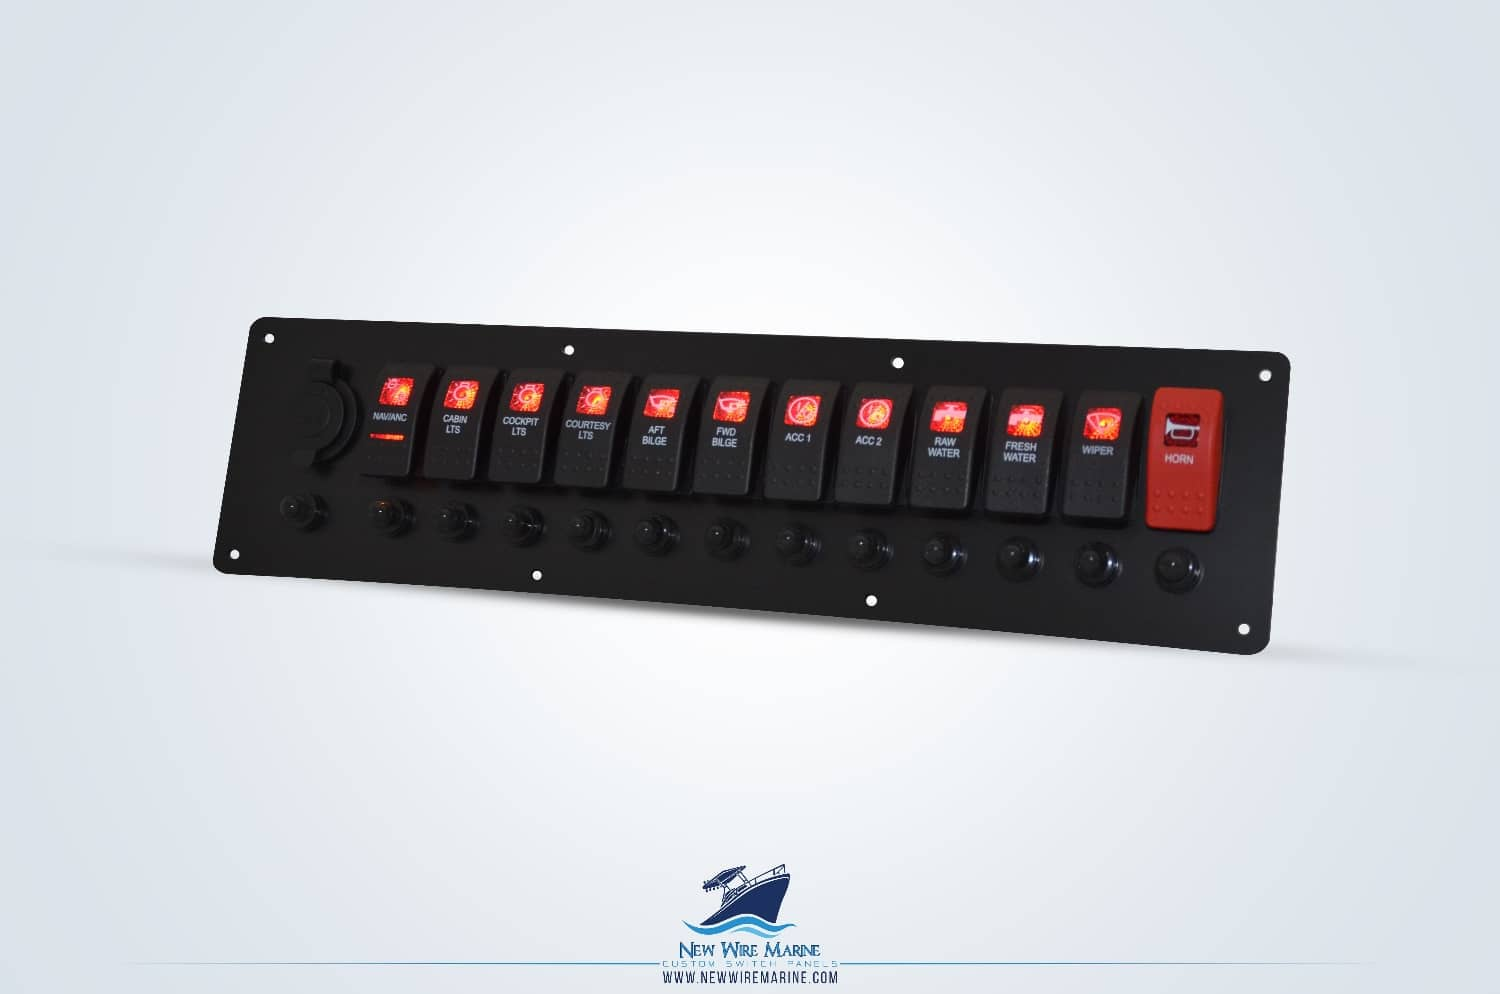 boat switch panel in black with red contura II printed rocker switches and 12V socket